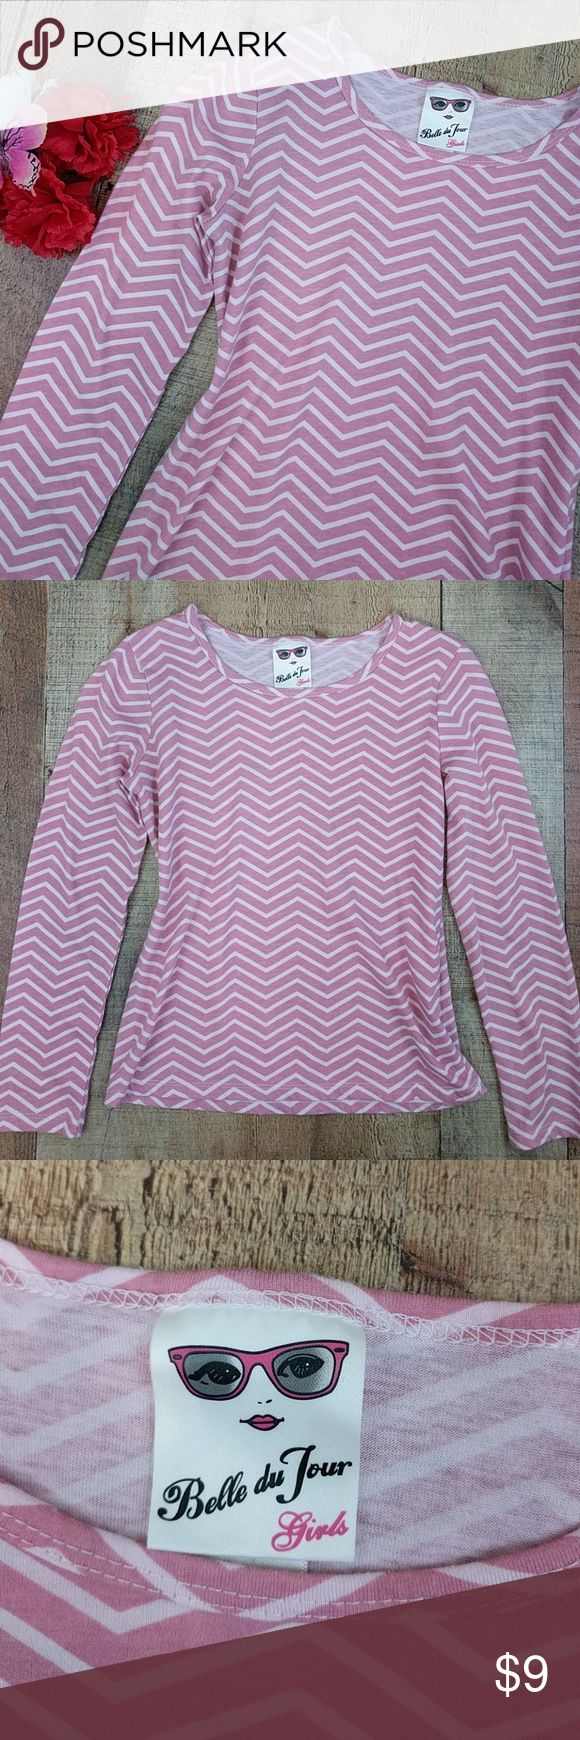 "Girls Chevron Top Pink Long Sleeve Tee Sz M Cute girls top. Chevron pattern pink and white size medium. Chest around at underarms 30"". Length from shoulder 19"". Sleeve from neck 22"". Clean. Smoke free. CT4 Belle Du Jour Shirts & Tops Tees - Long Sleeve"